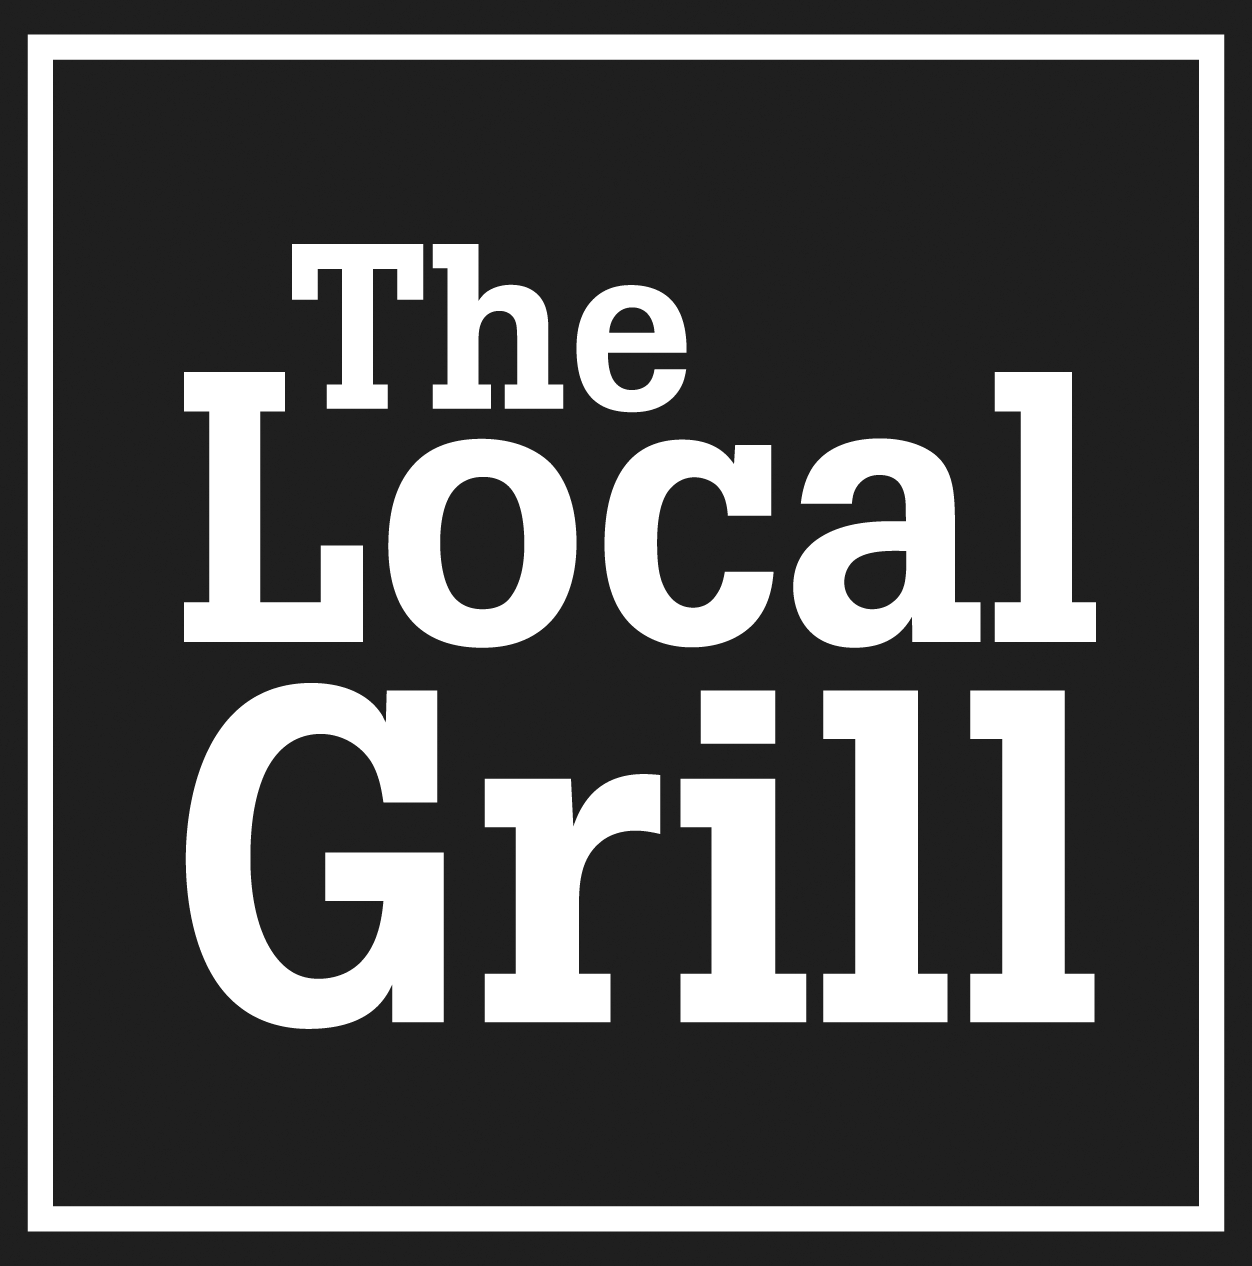 The Local Grill online food ordering